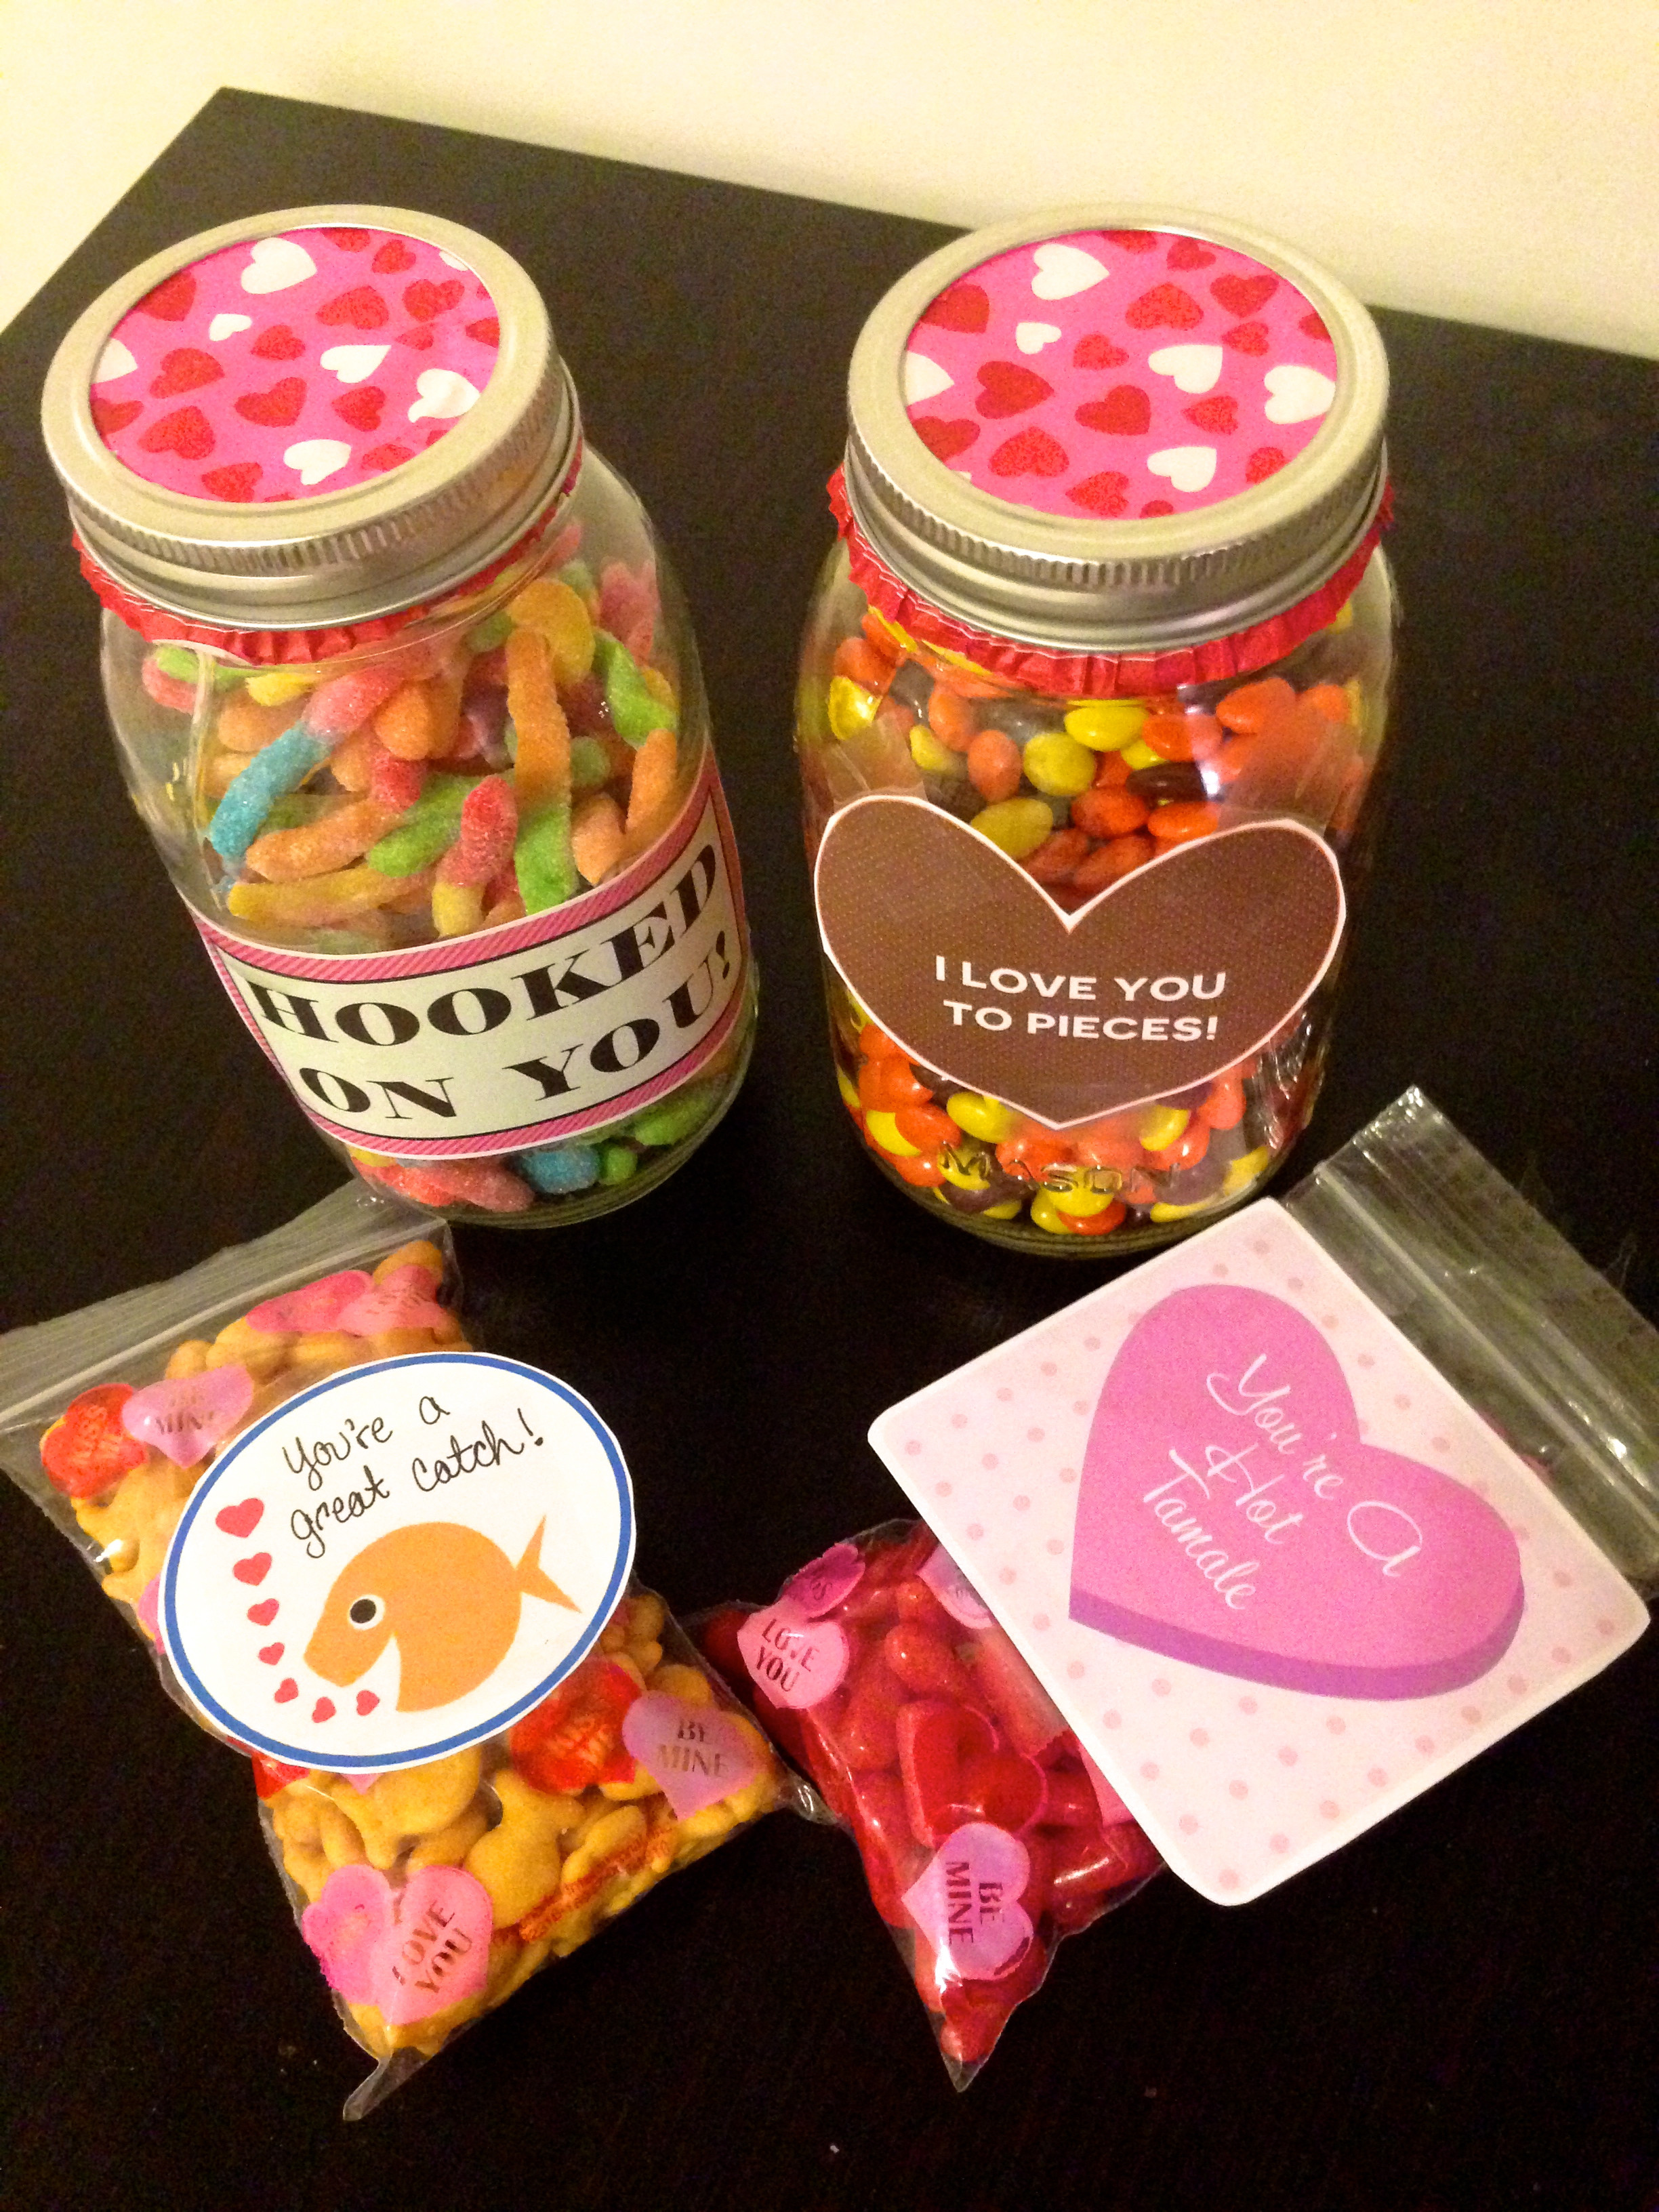 Valentines Gift Ideas For Him  Romantic Gift Idea for Him – a Bud